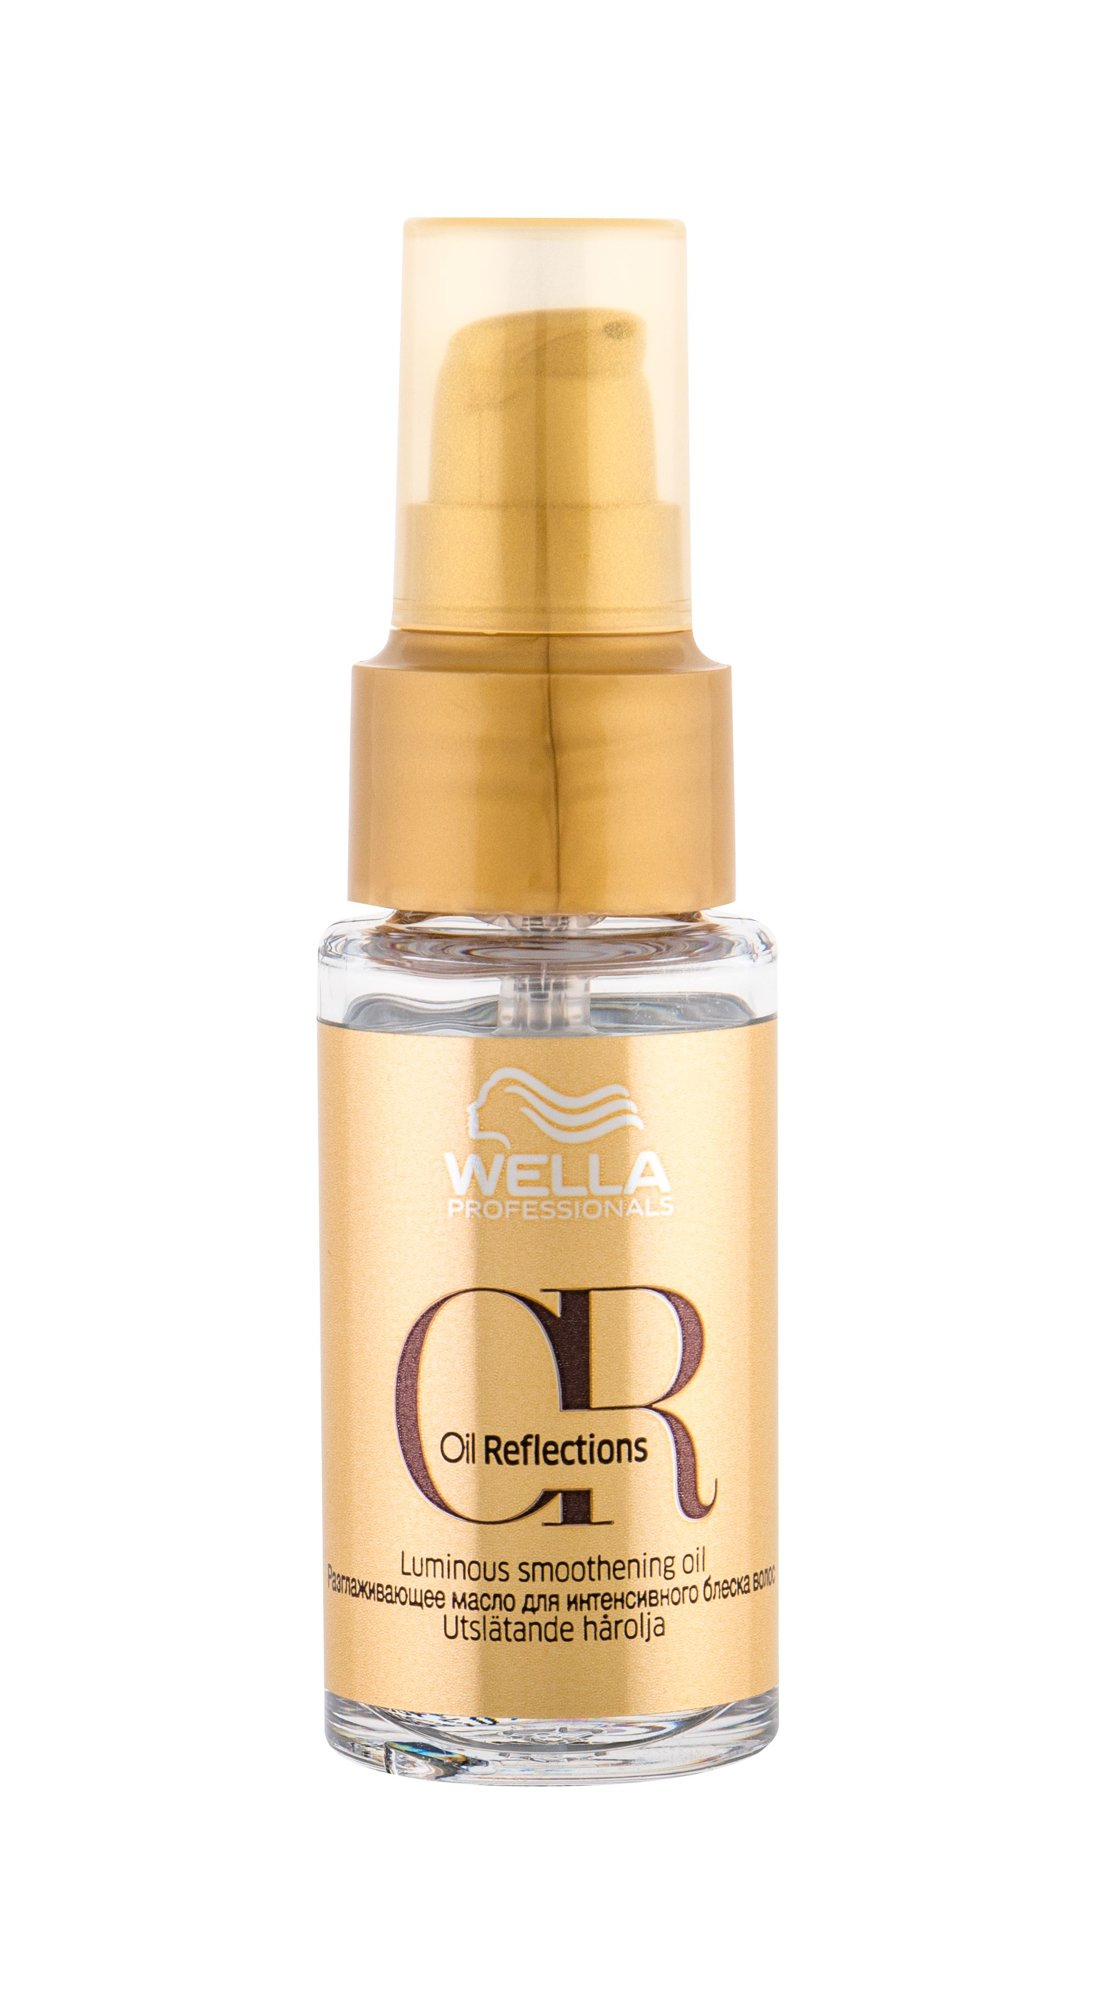 Wella Oil Reflections Hair Oils and Serum 30ml